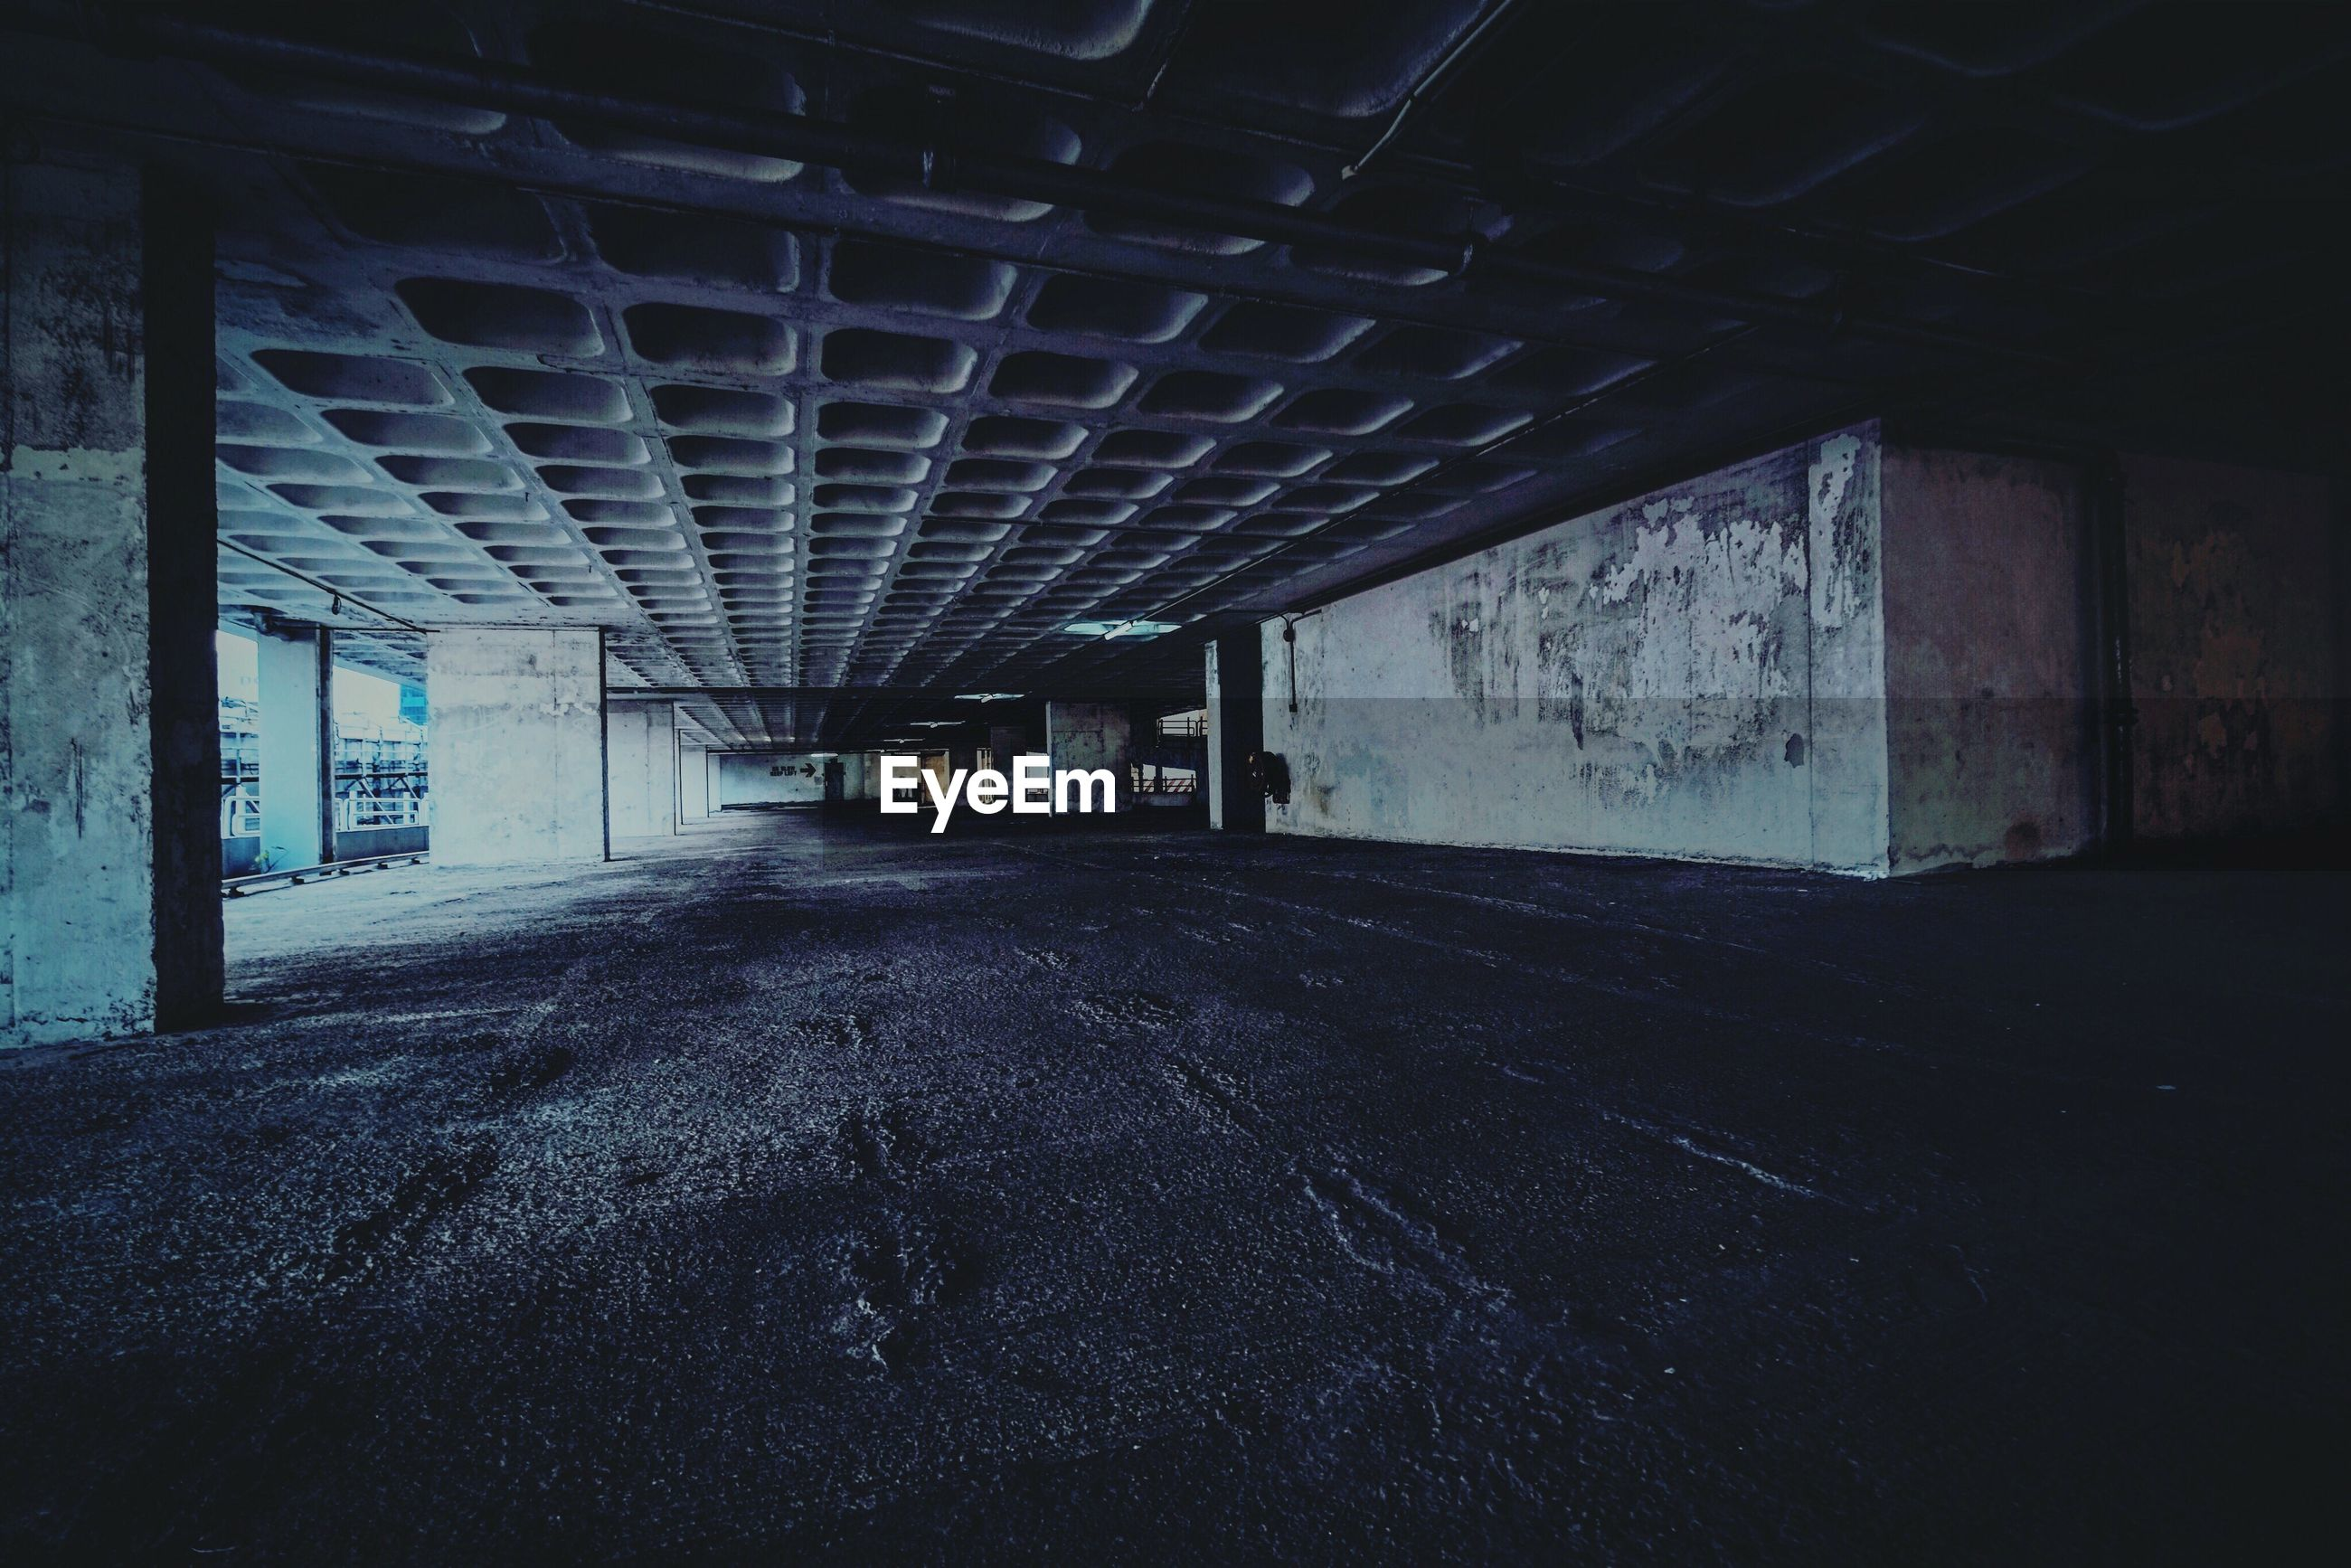 indoors, architecture, built structure, abandoned, ceiling, wall - building feature, empty, the way forward, tunnel, window, interior, obsolete, illuminated, absence, wall, building, damaged, no people, dark, run-down